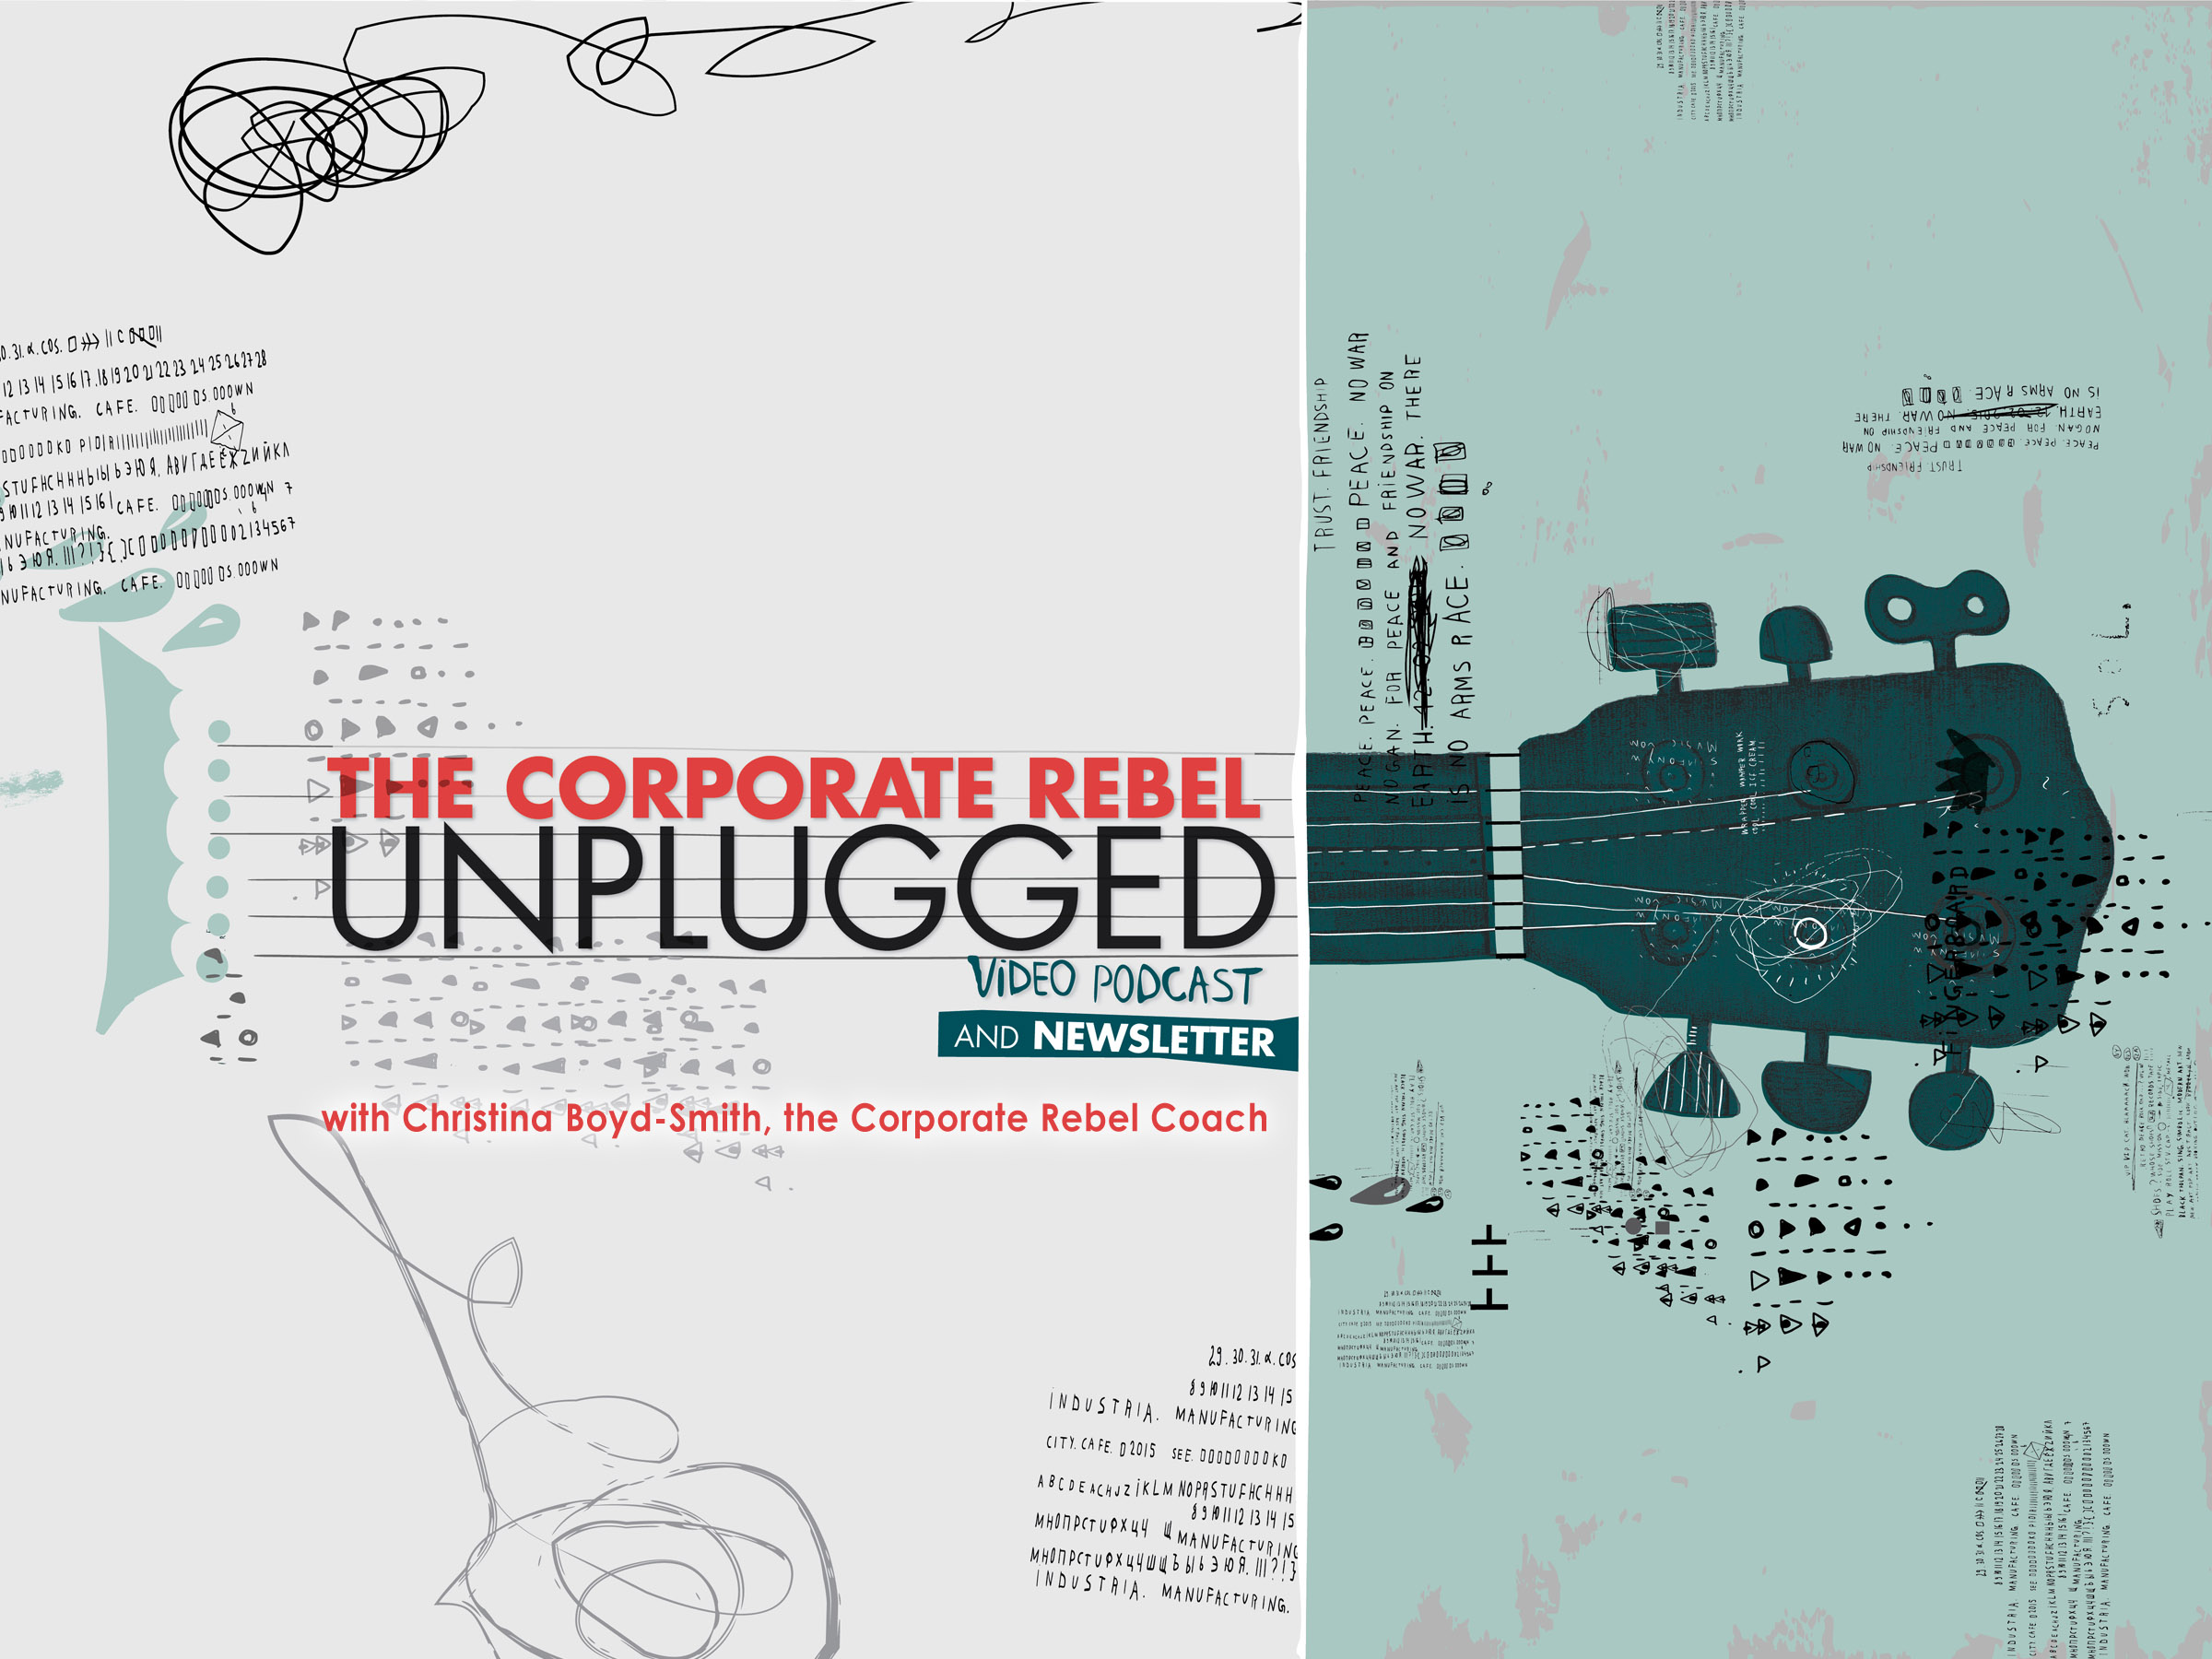 CorpRebelUnplugged-graphic2.jpg